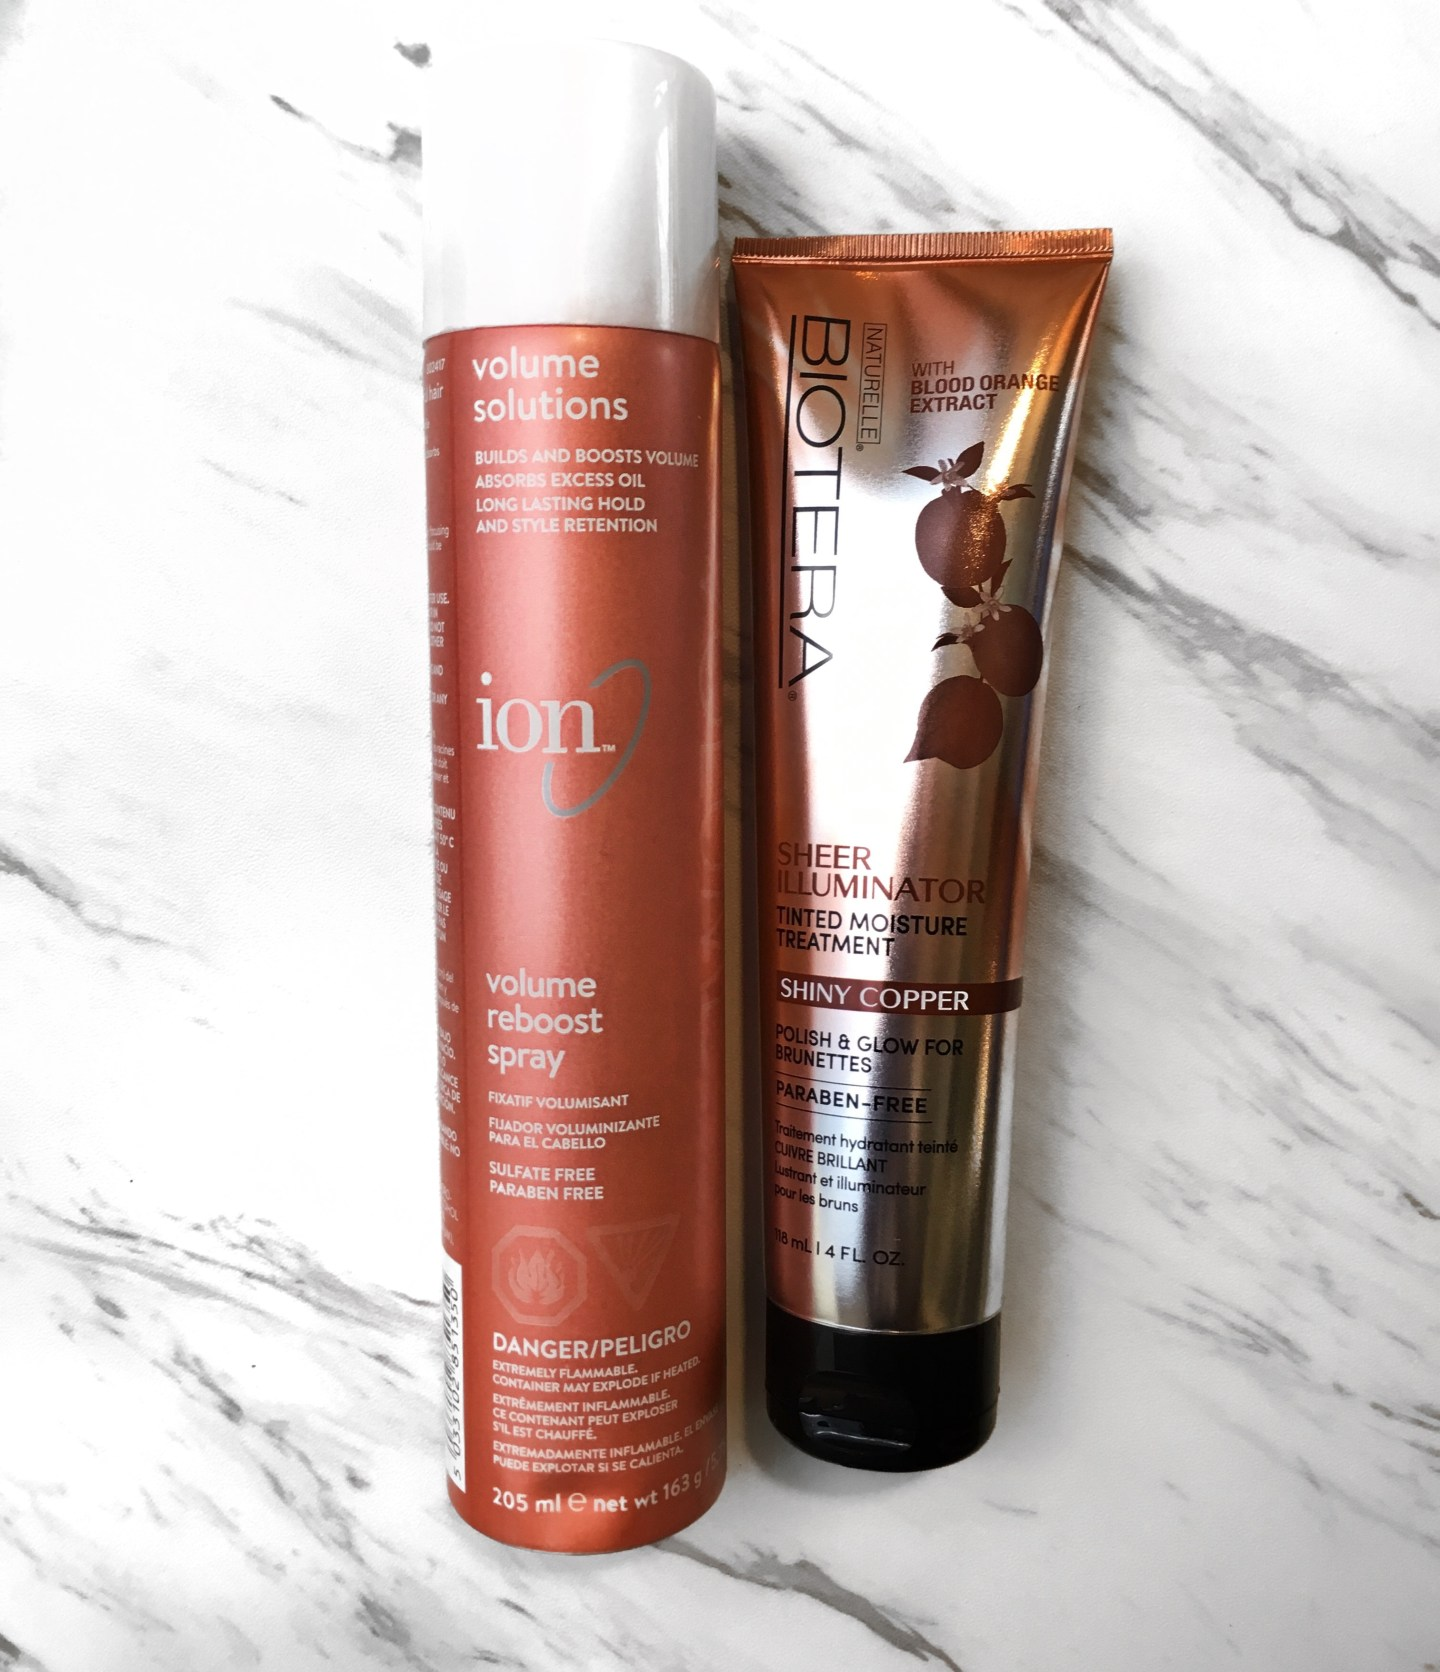 Trying New Hair Care Products